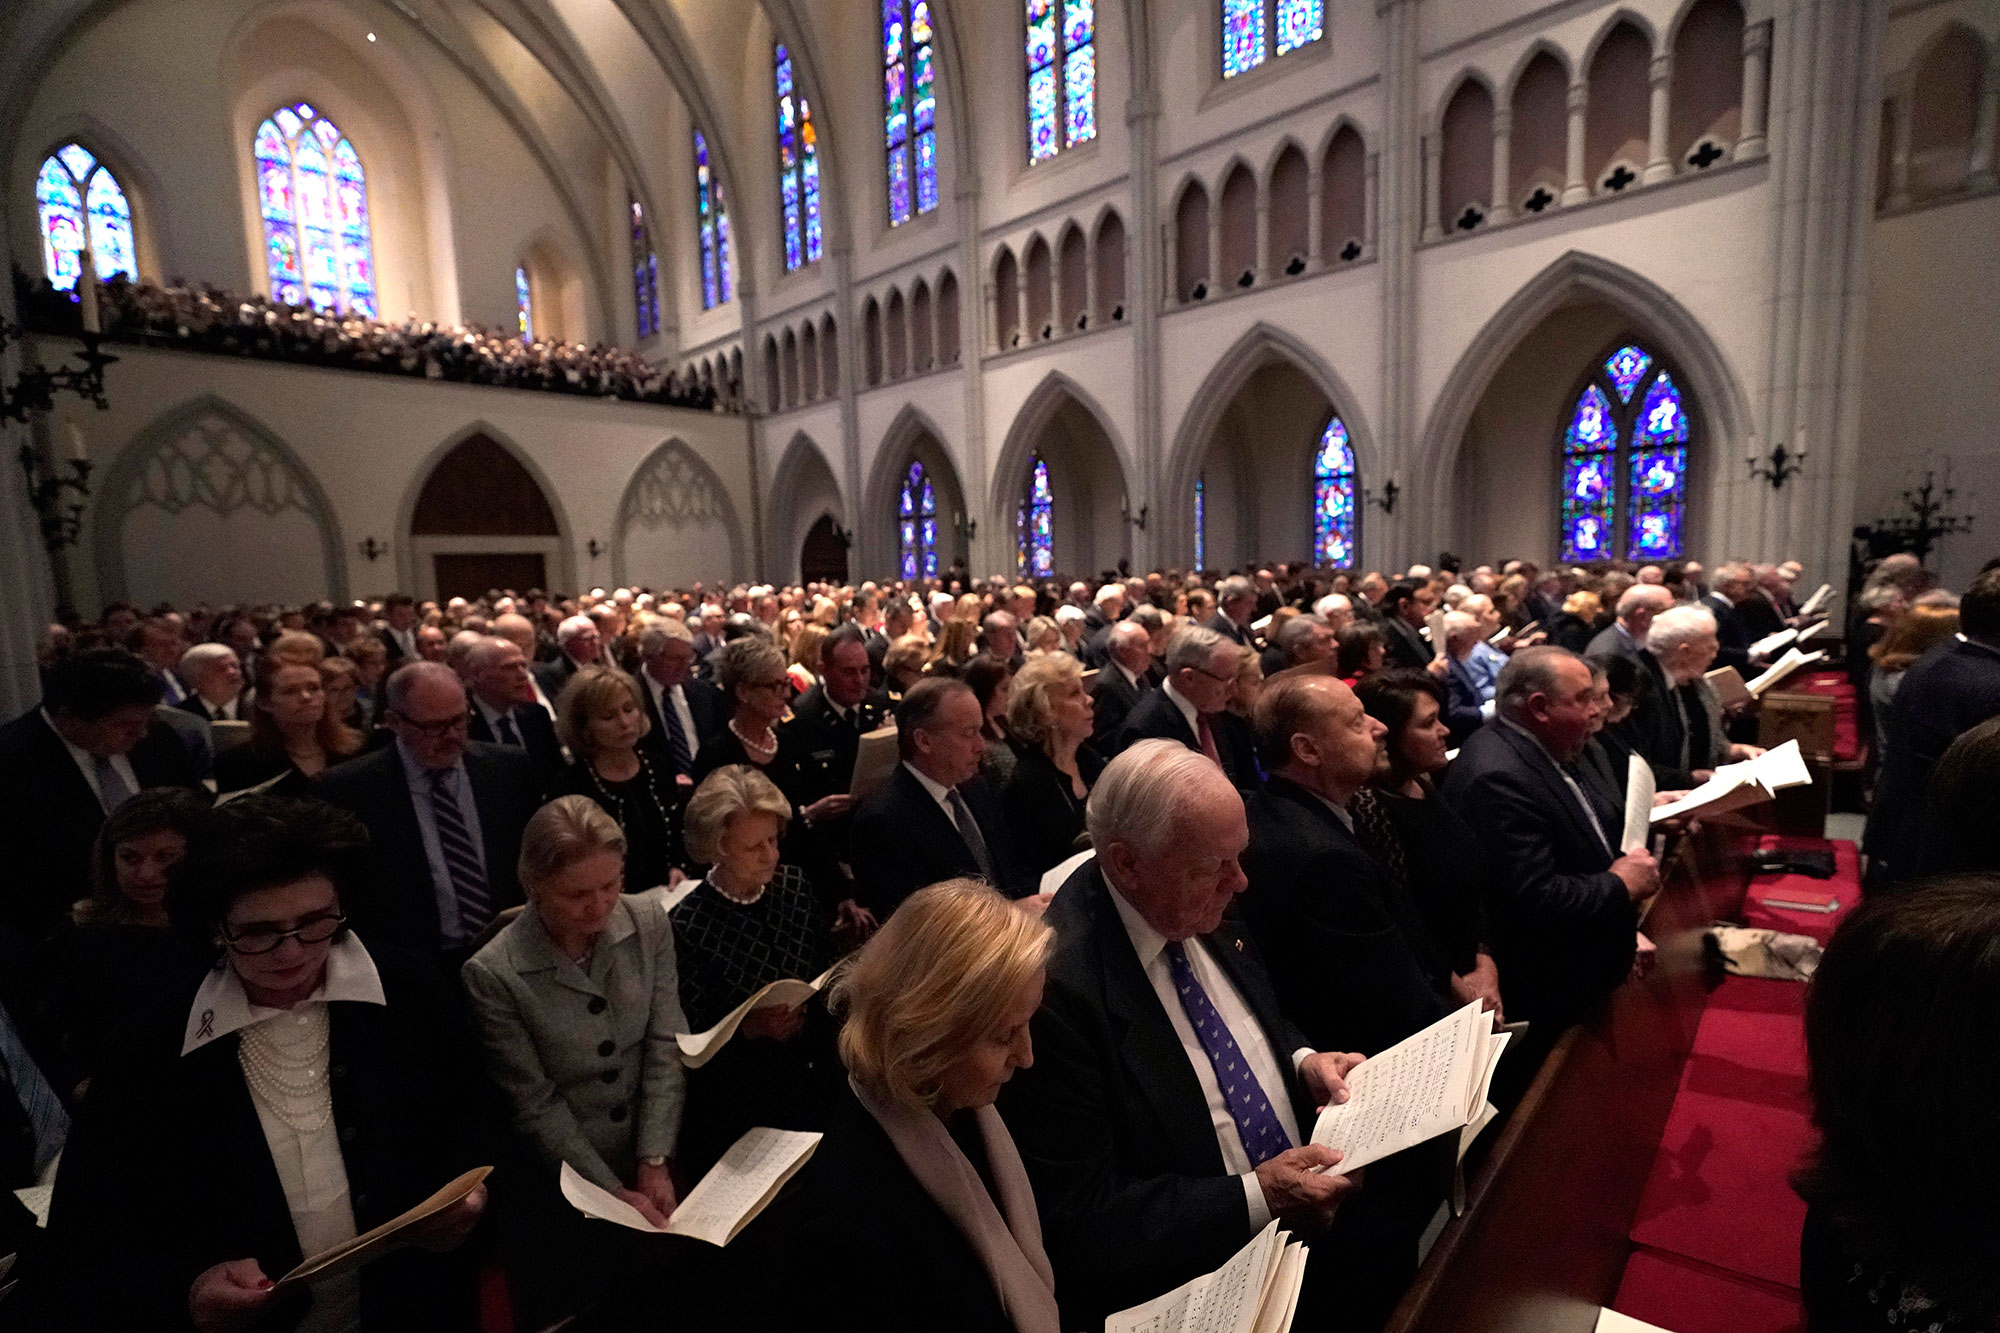 <div class='meta'><div class='origin-logo' data-origin='none'></div><span class='caption-text' data-credit='David J. Phillip, Pool/AP Photo'>Family and friends attend a funeral service for former President George H.W. Bush at St. Martin's Episcopal Church Thursday, Dec. 6, 2018, in Houston.</span></div>